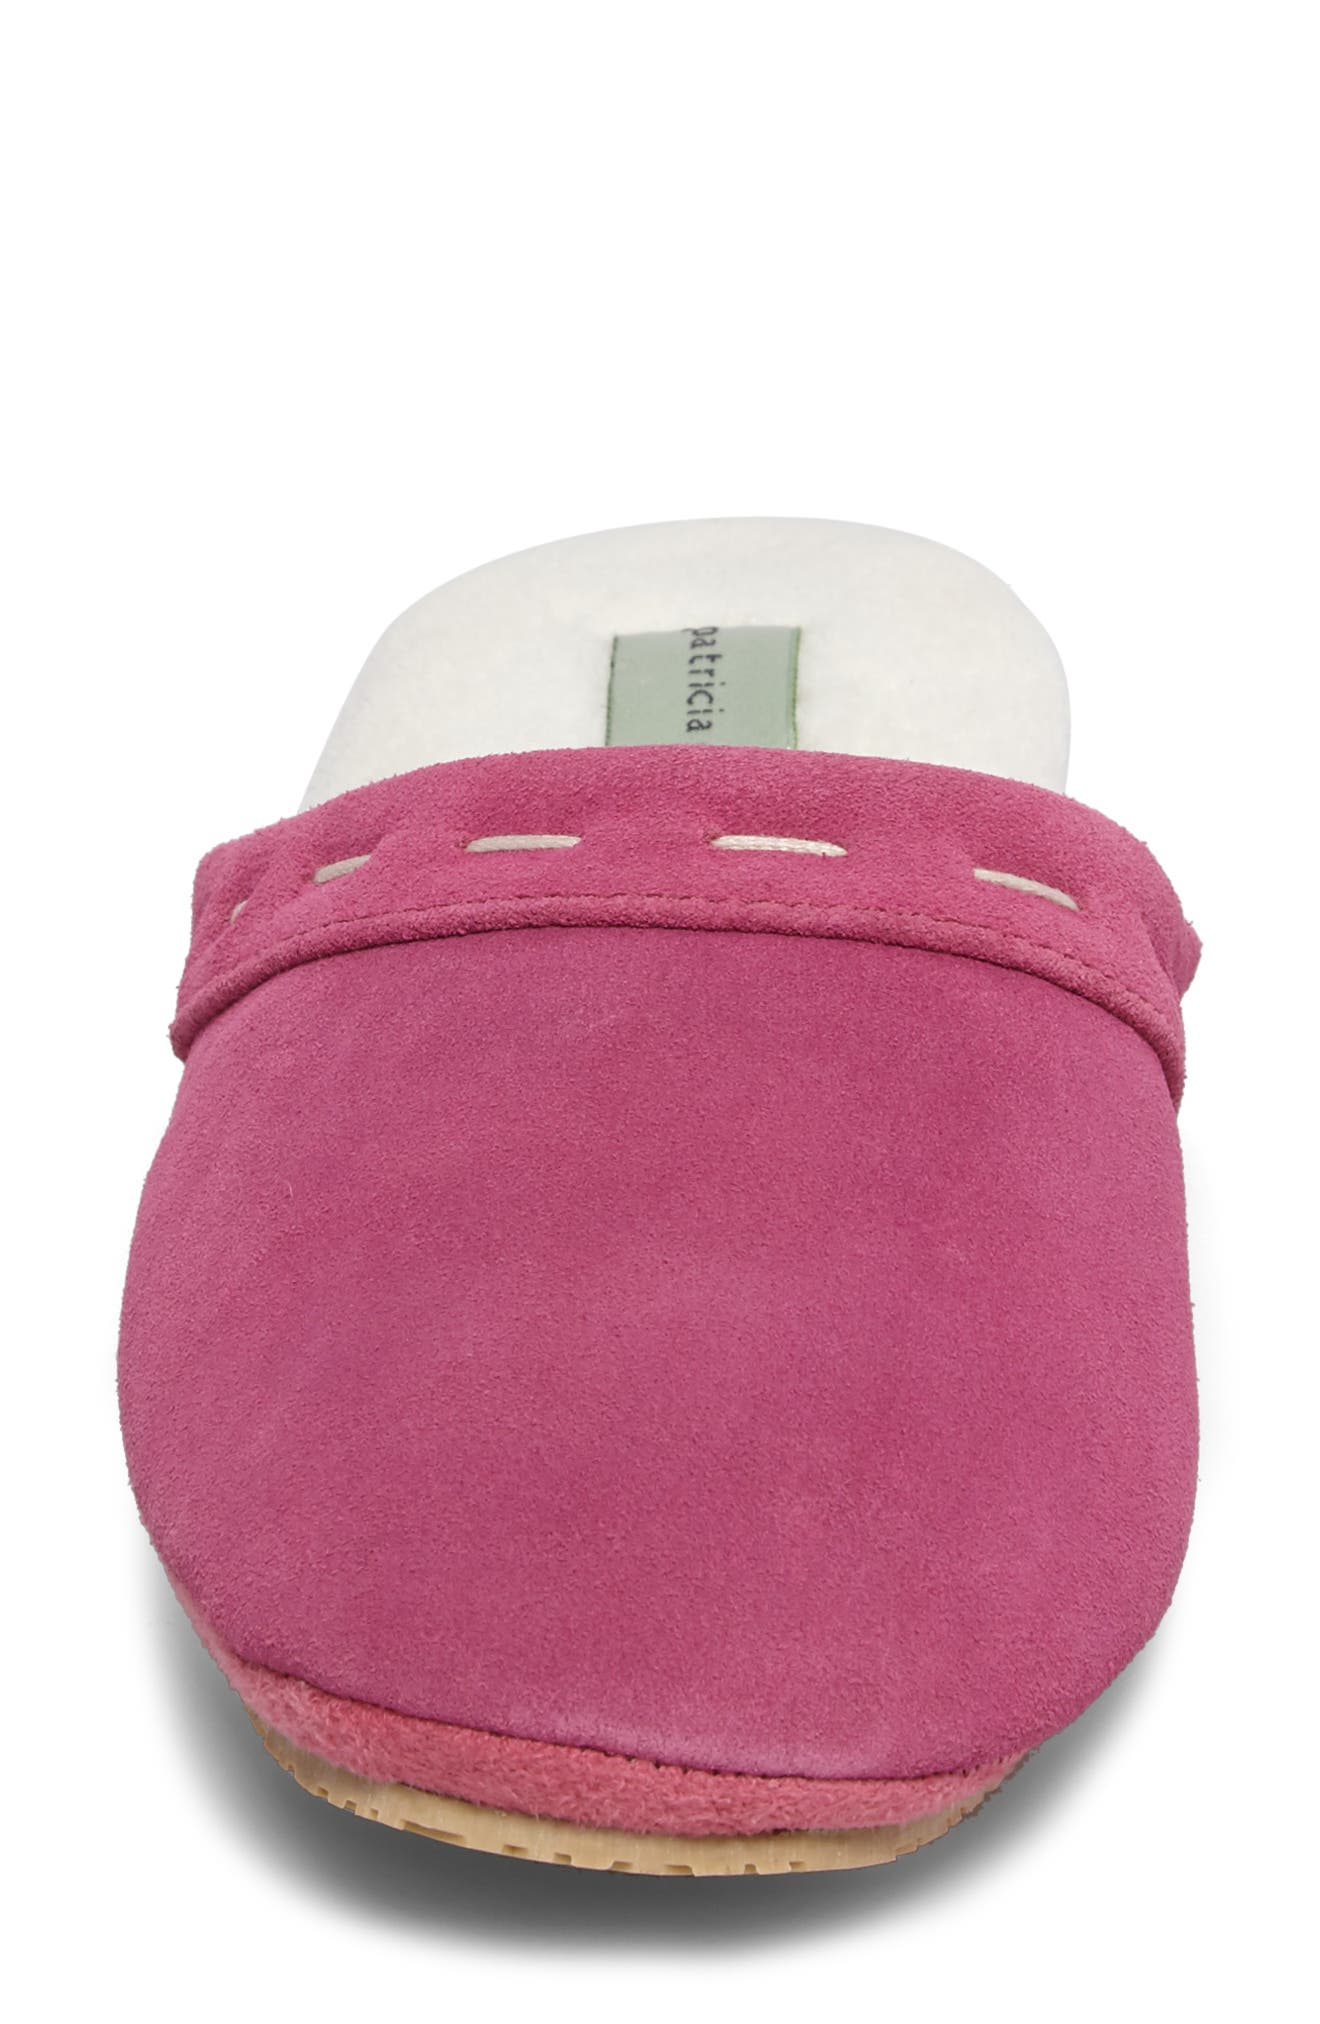 Mayfair Wedge Slipper,                             Alternate thumbnail 4, color,                             Hot Pink Suede